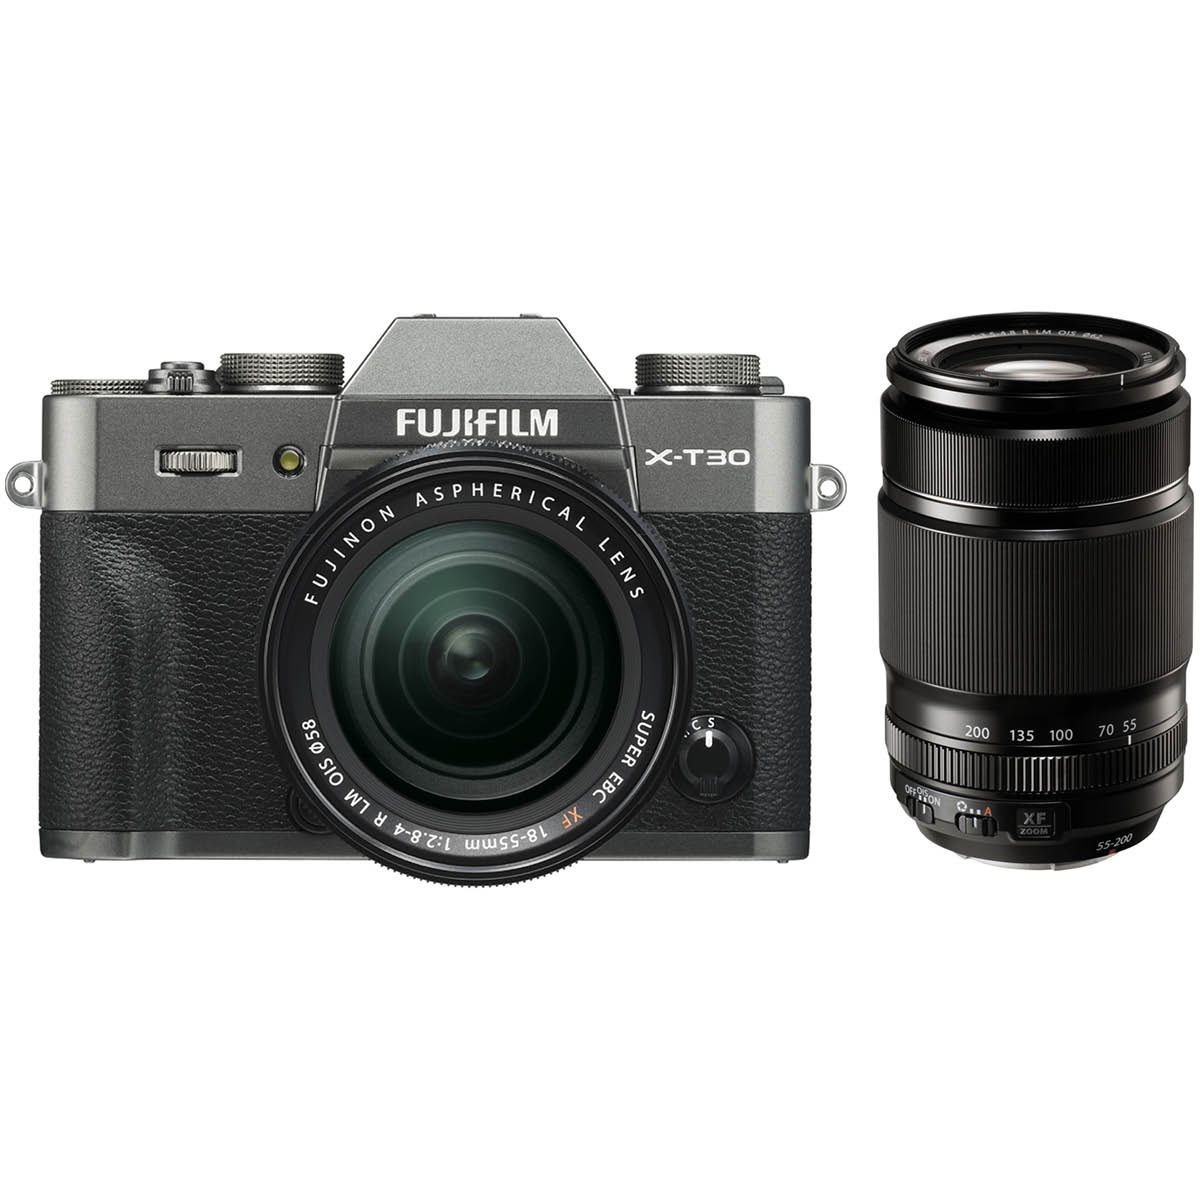 Fujifilm X T30 Kit mit 18-55 mm 1:2,8-4 + 55-200 mm Anthrazit